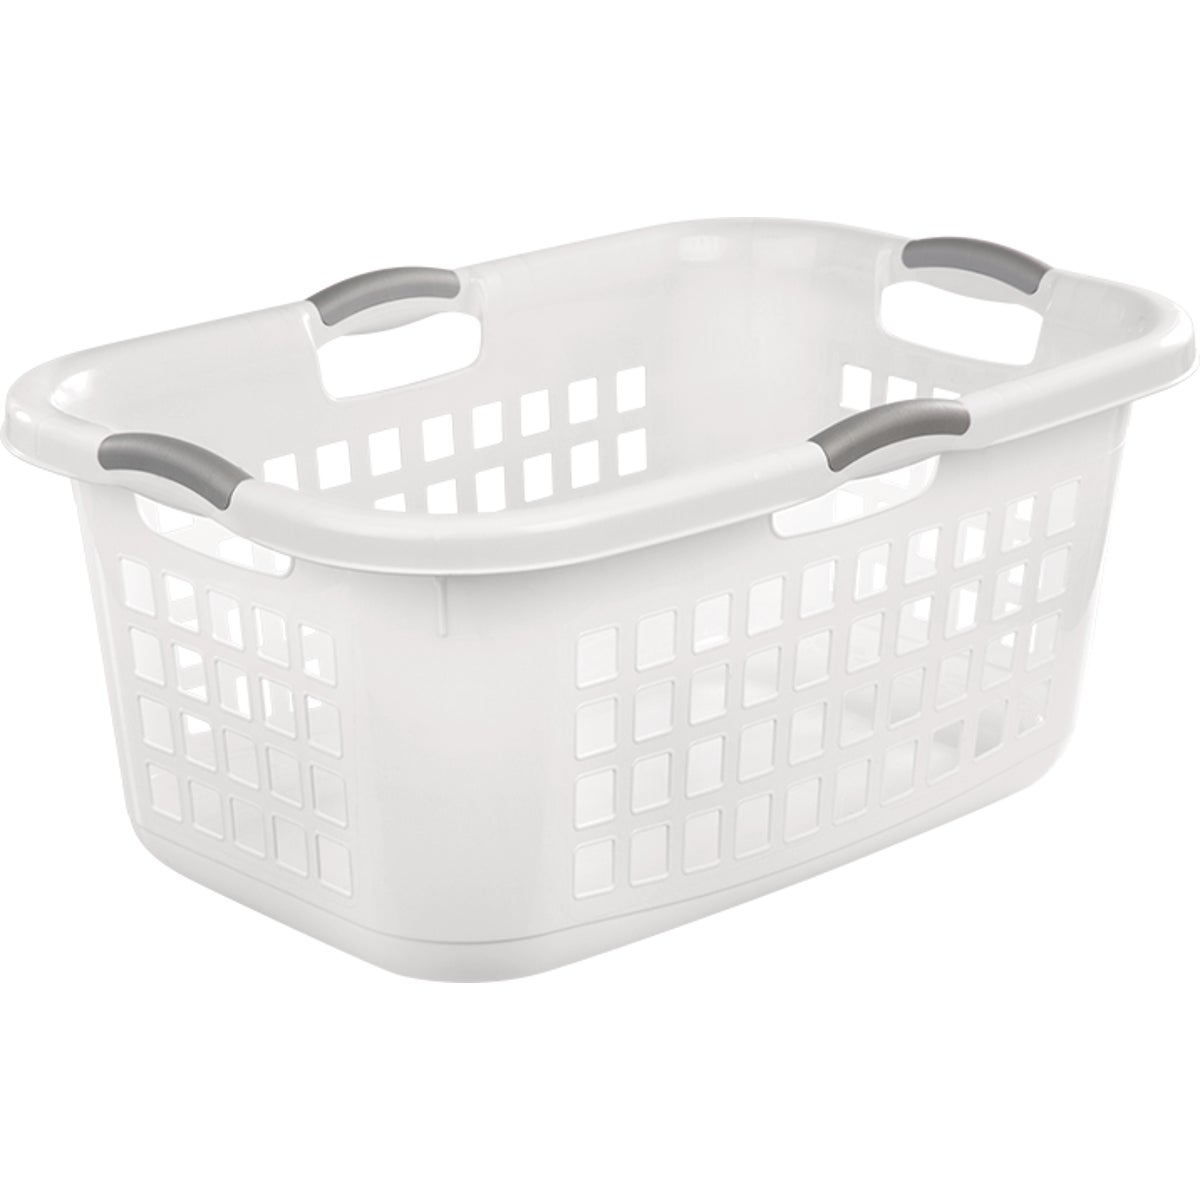 2 BU LAUNDRY BASKET